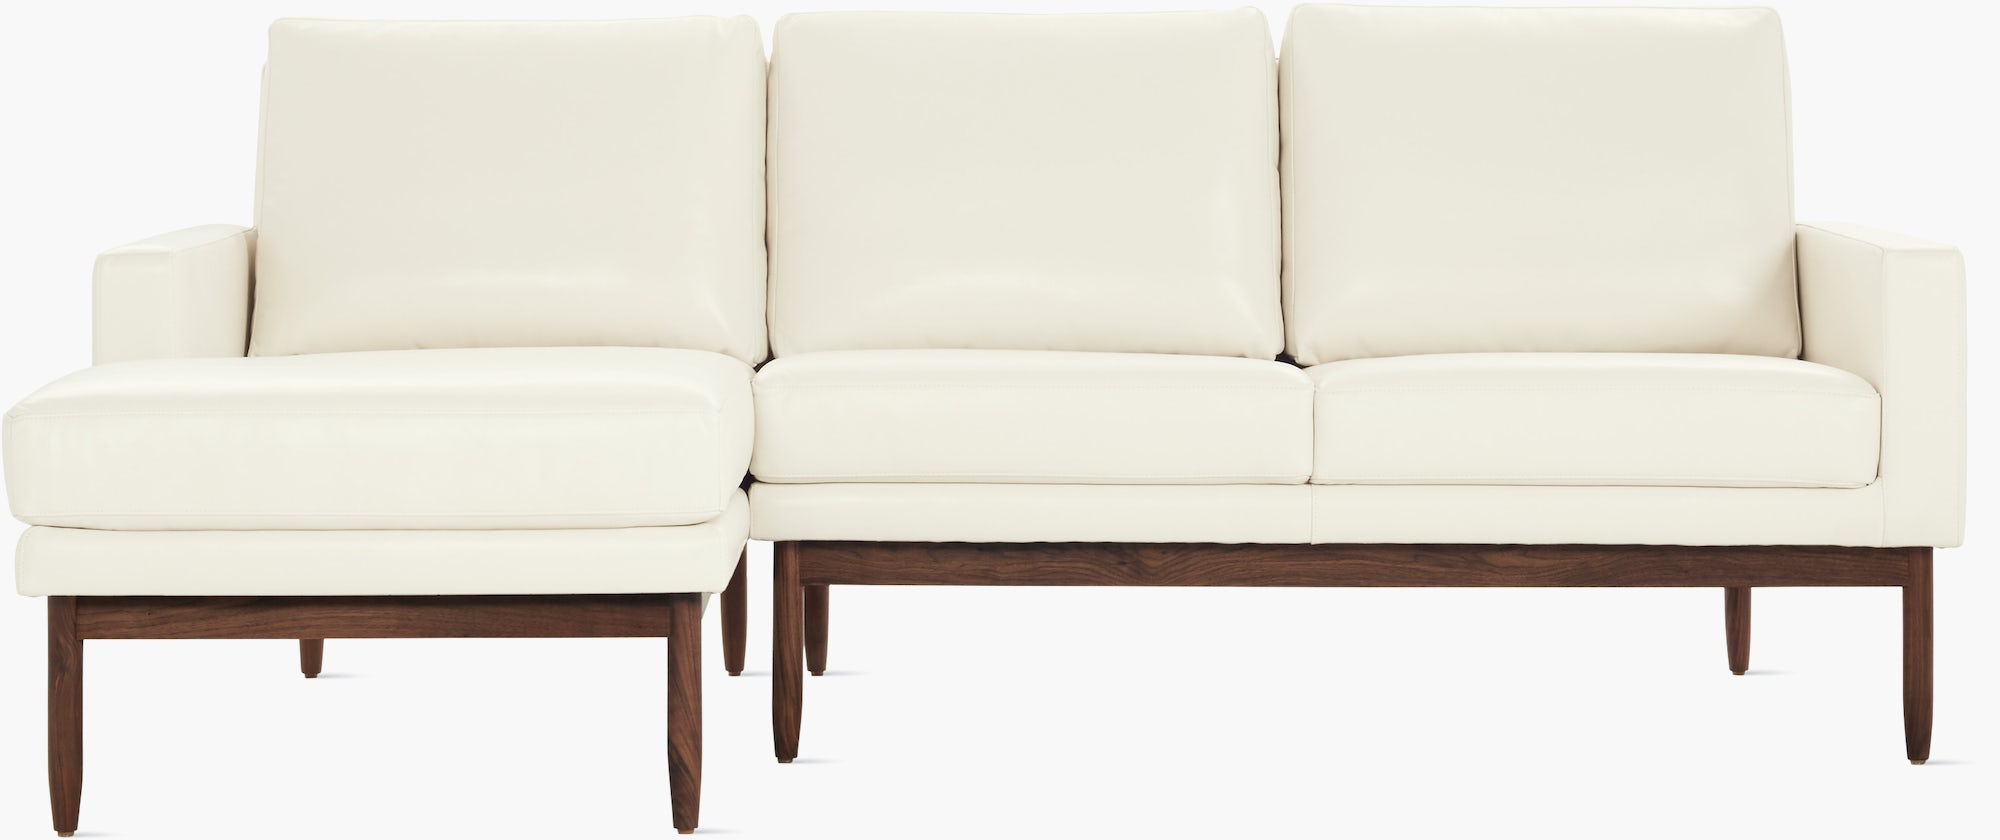 Raleigh Sectional Sofa - Design Within Reach